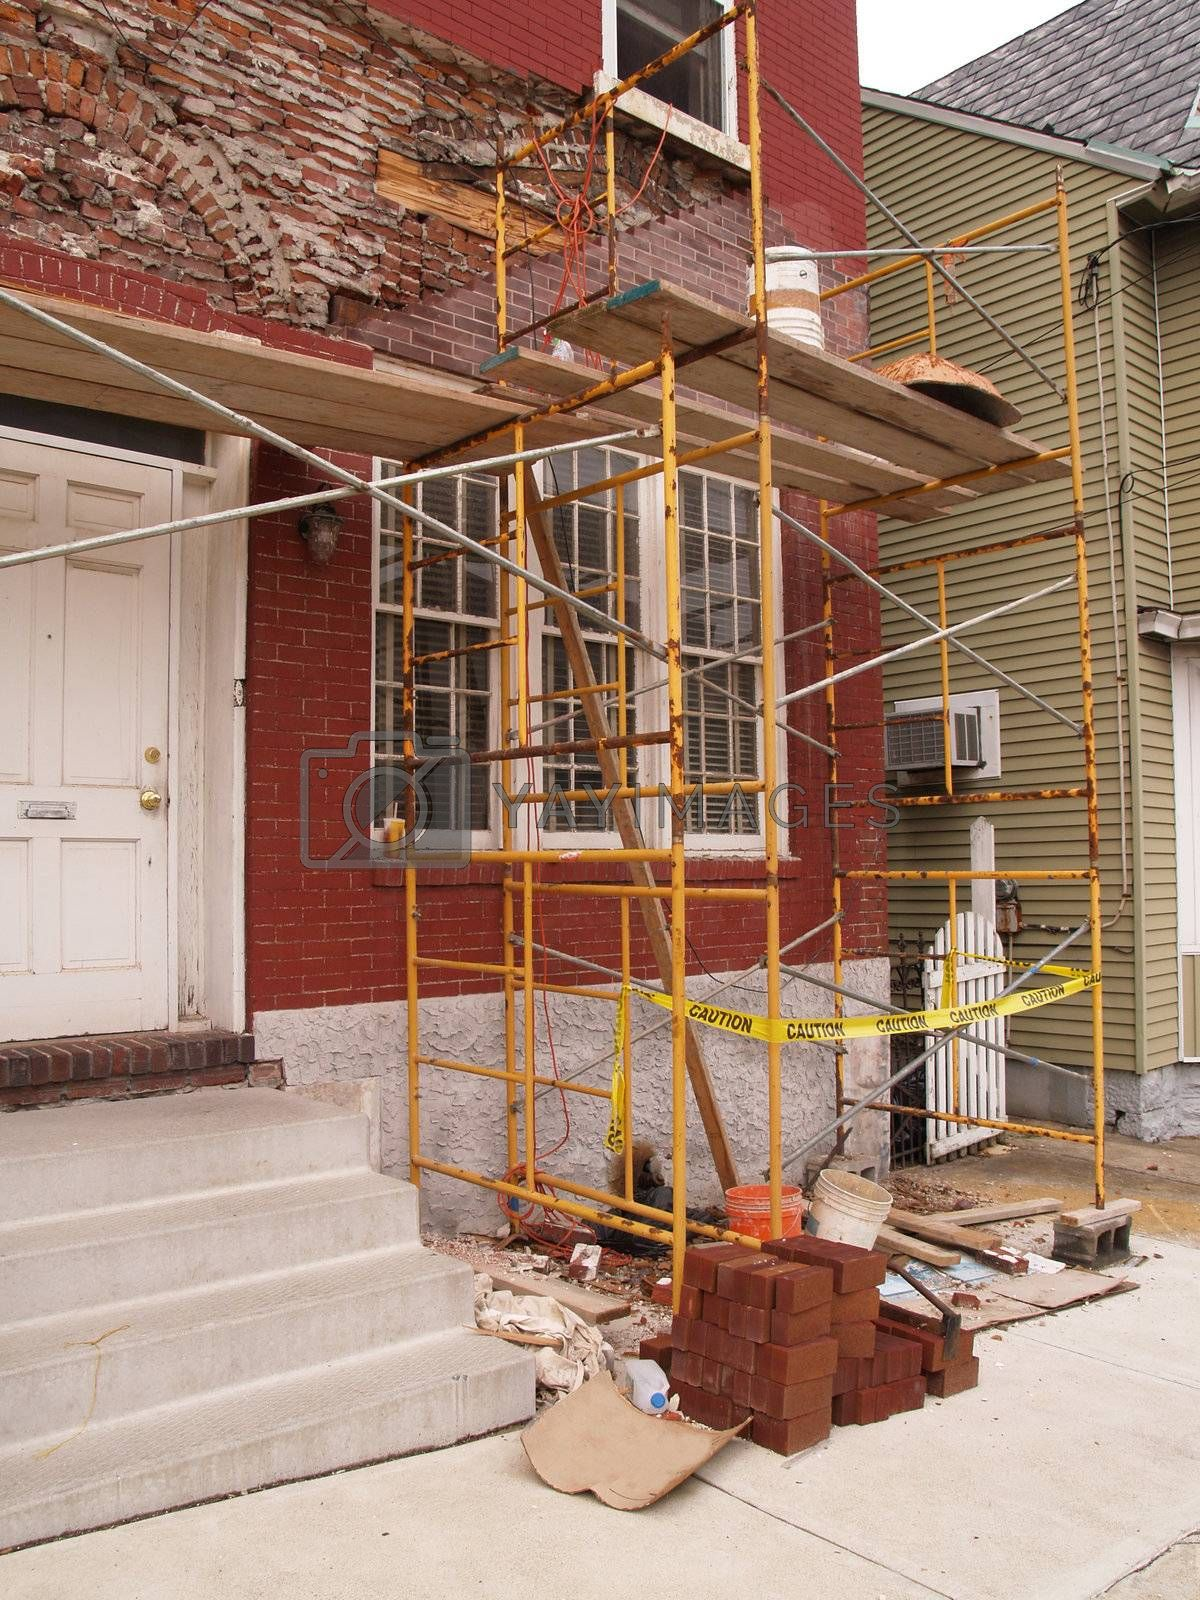 Royalty free image of house exterior remodel by cfarmer